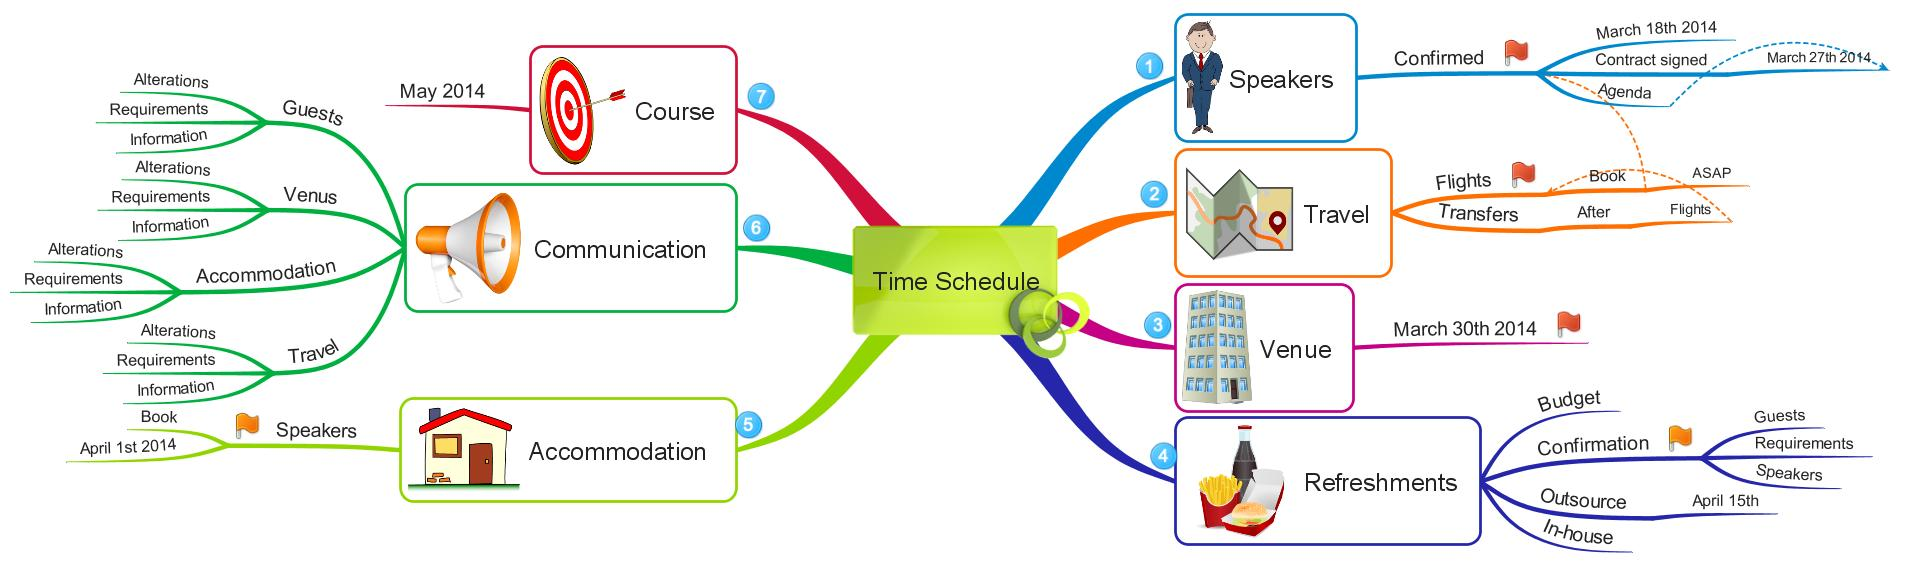 iMindMap: Time Schedule